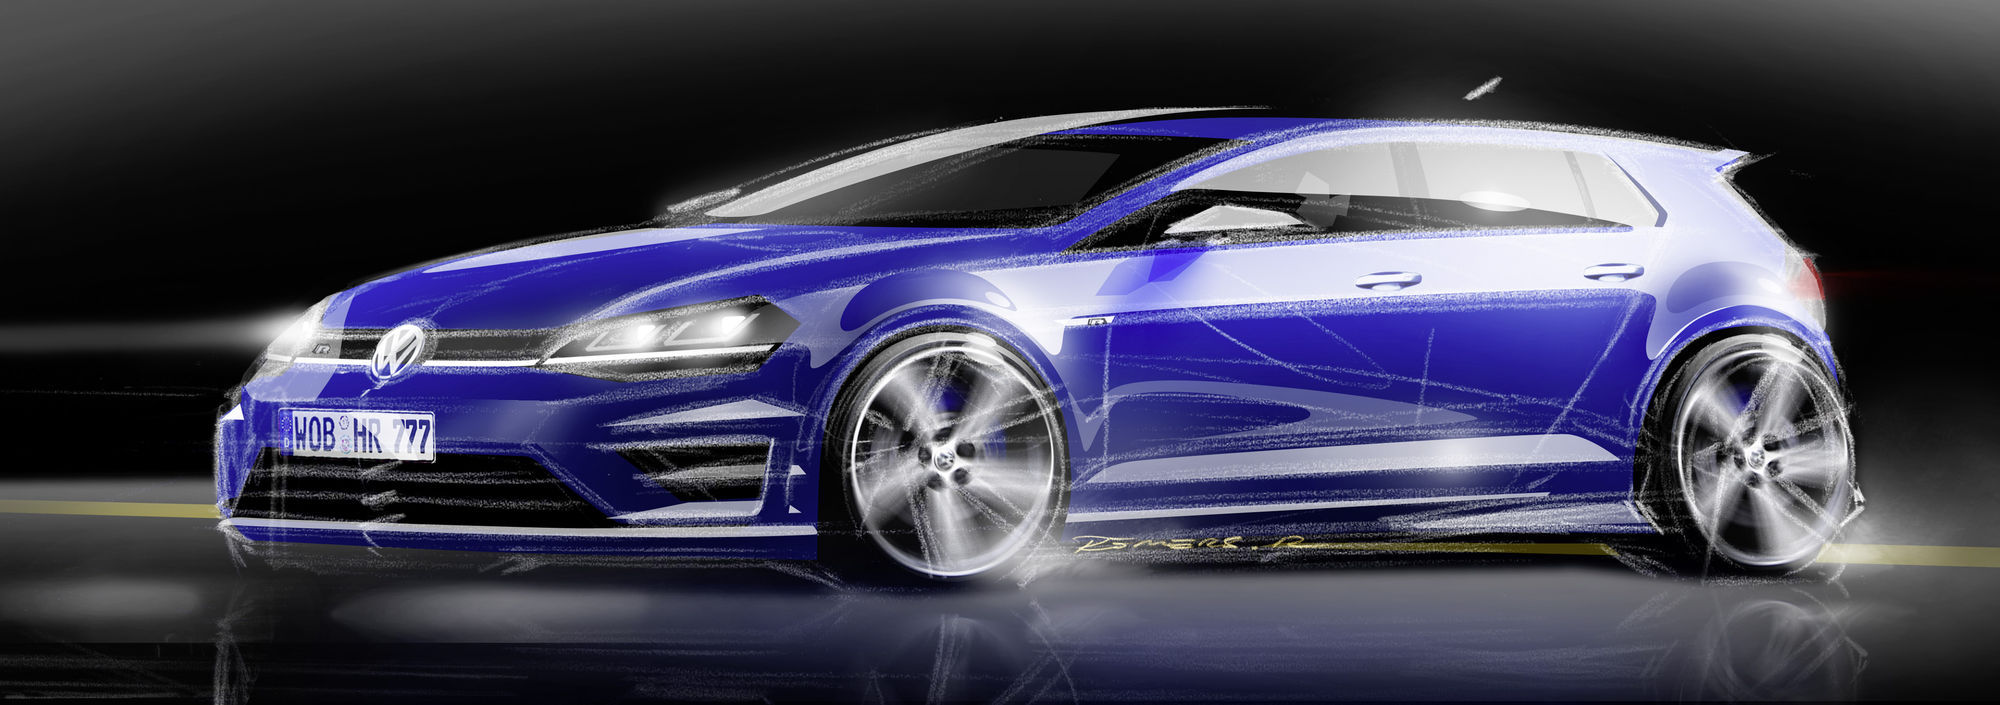 2015 Volkswagen Golf R | Early concept drawing of the VW Golf R